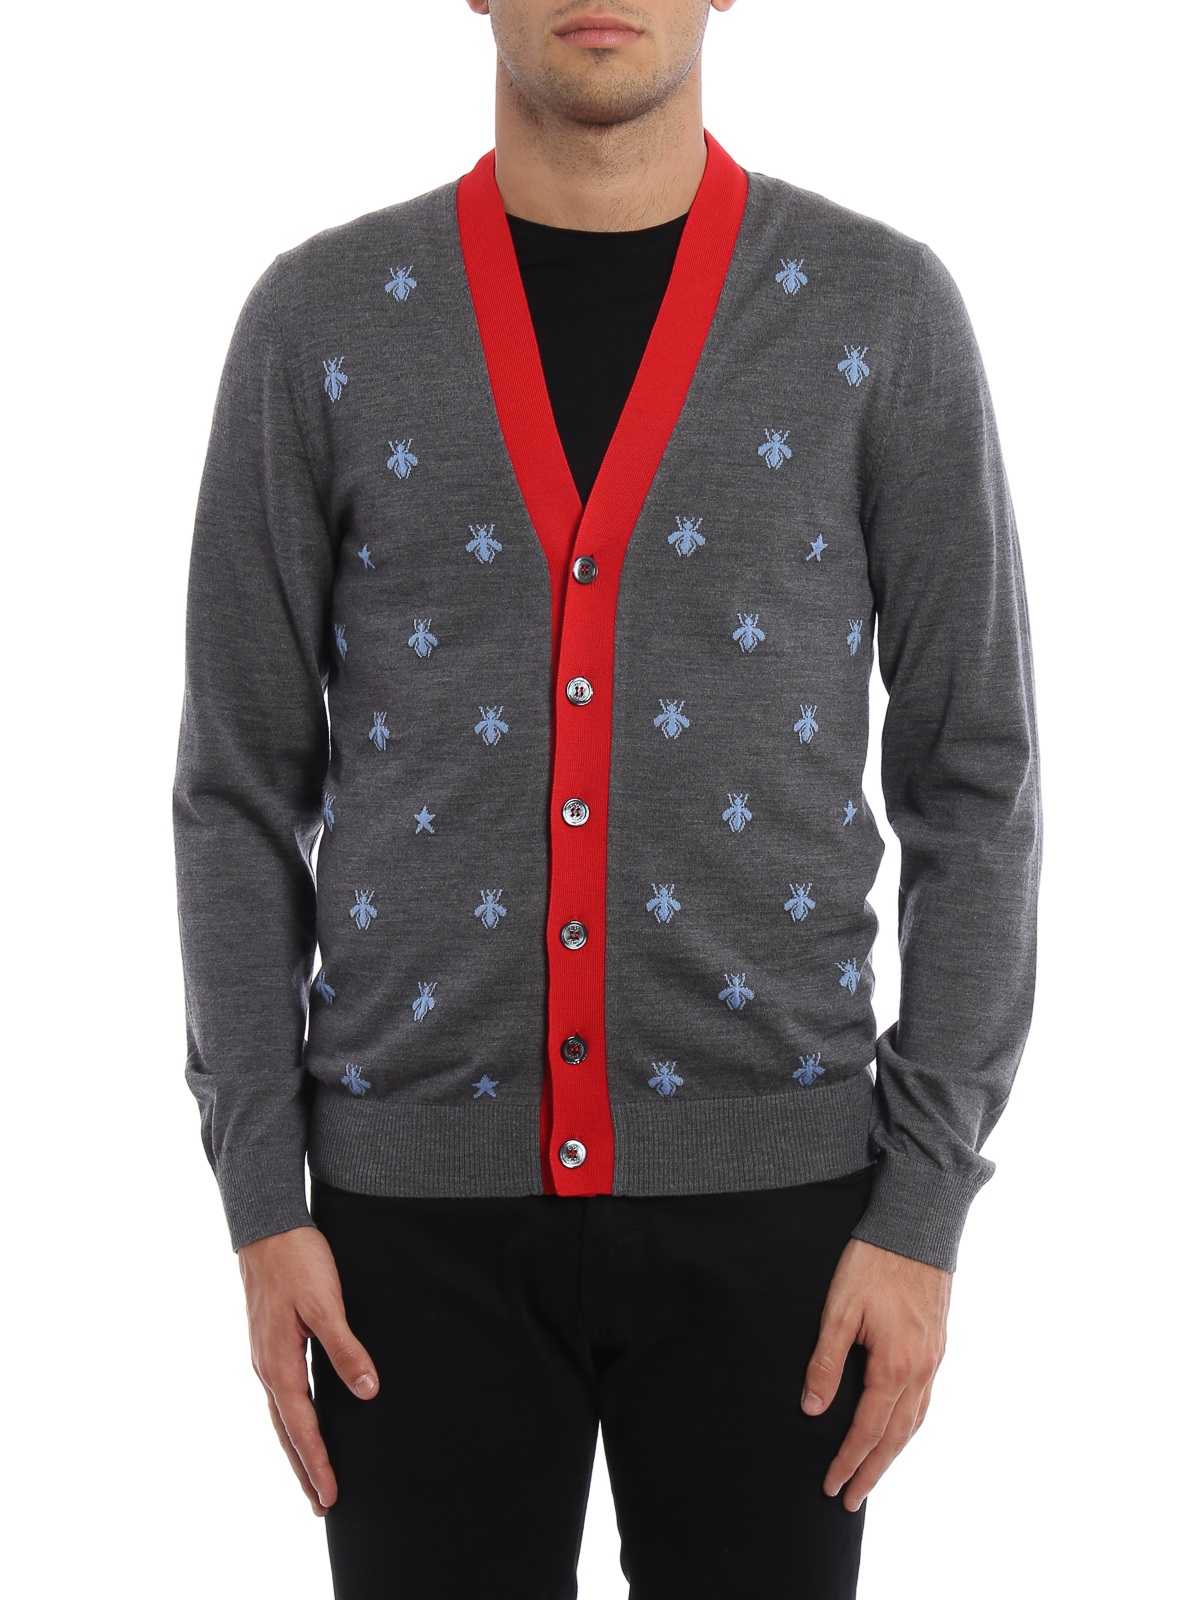 Bees and stars wool cardigan by Gucci - cardigans | iKRIX